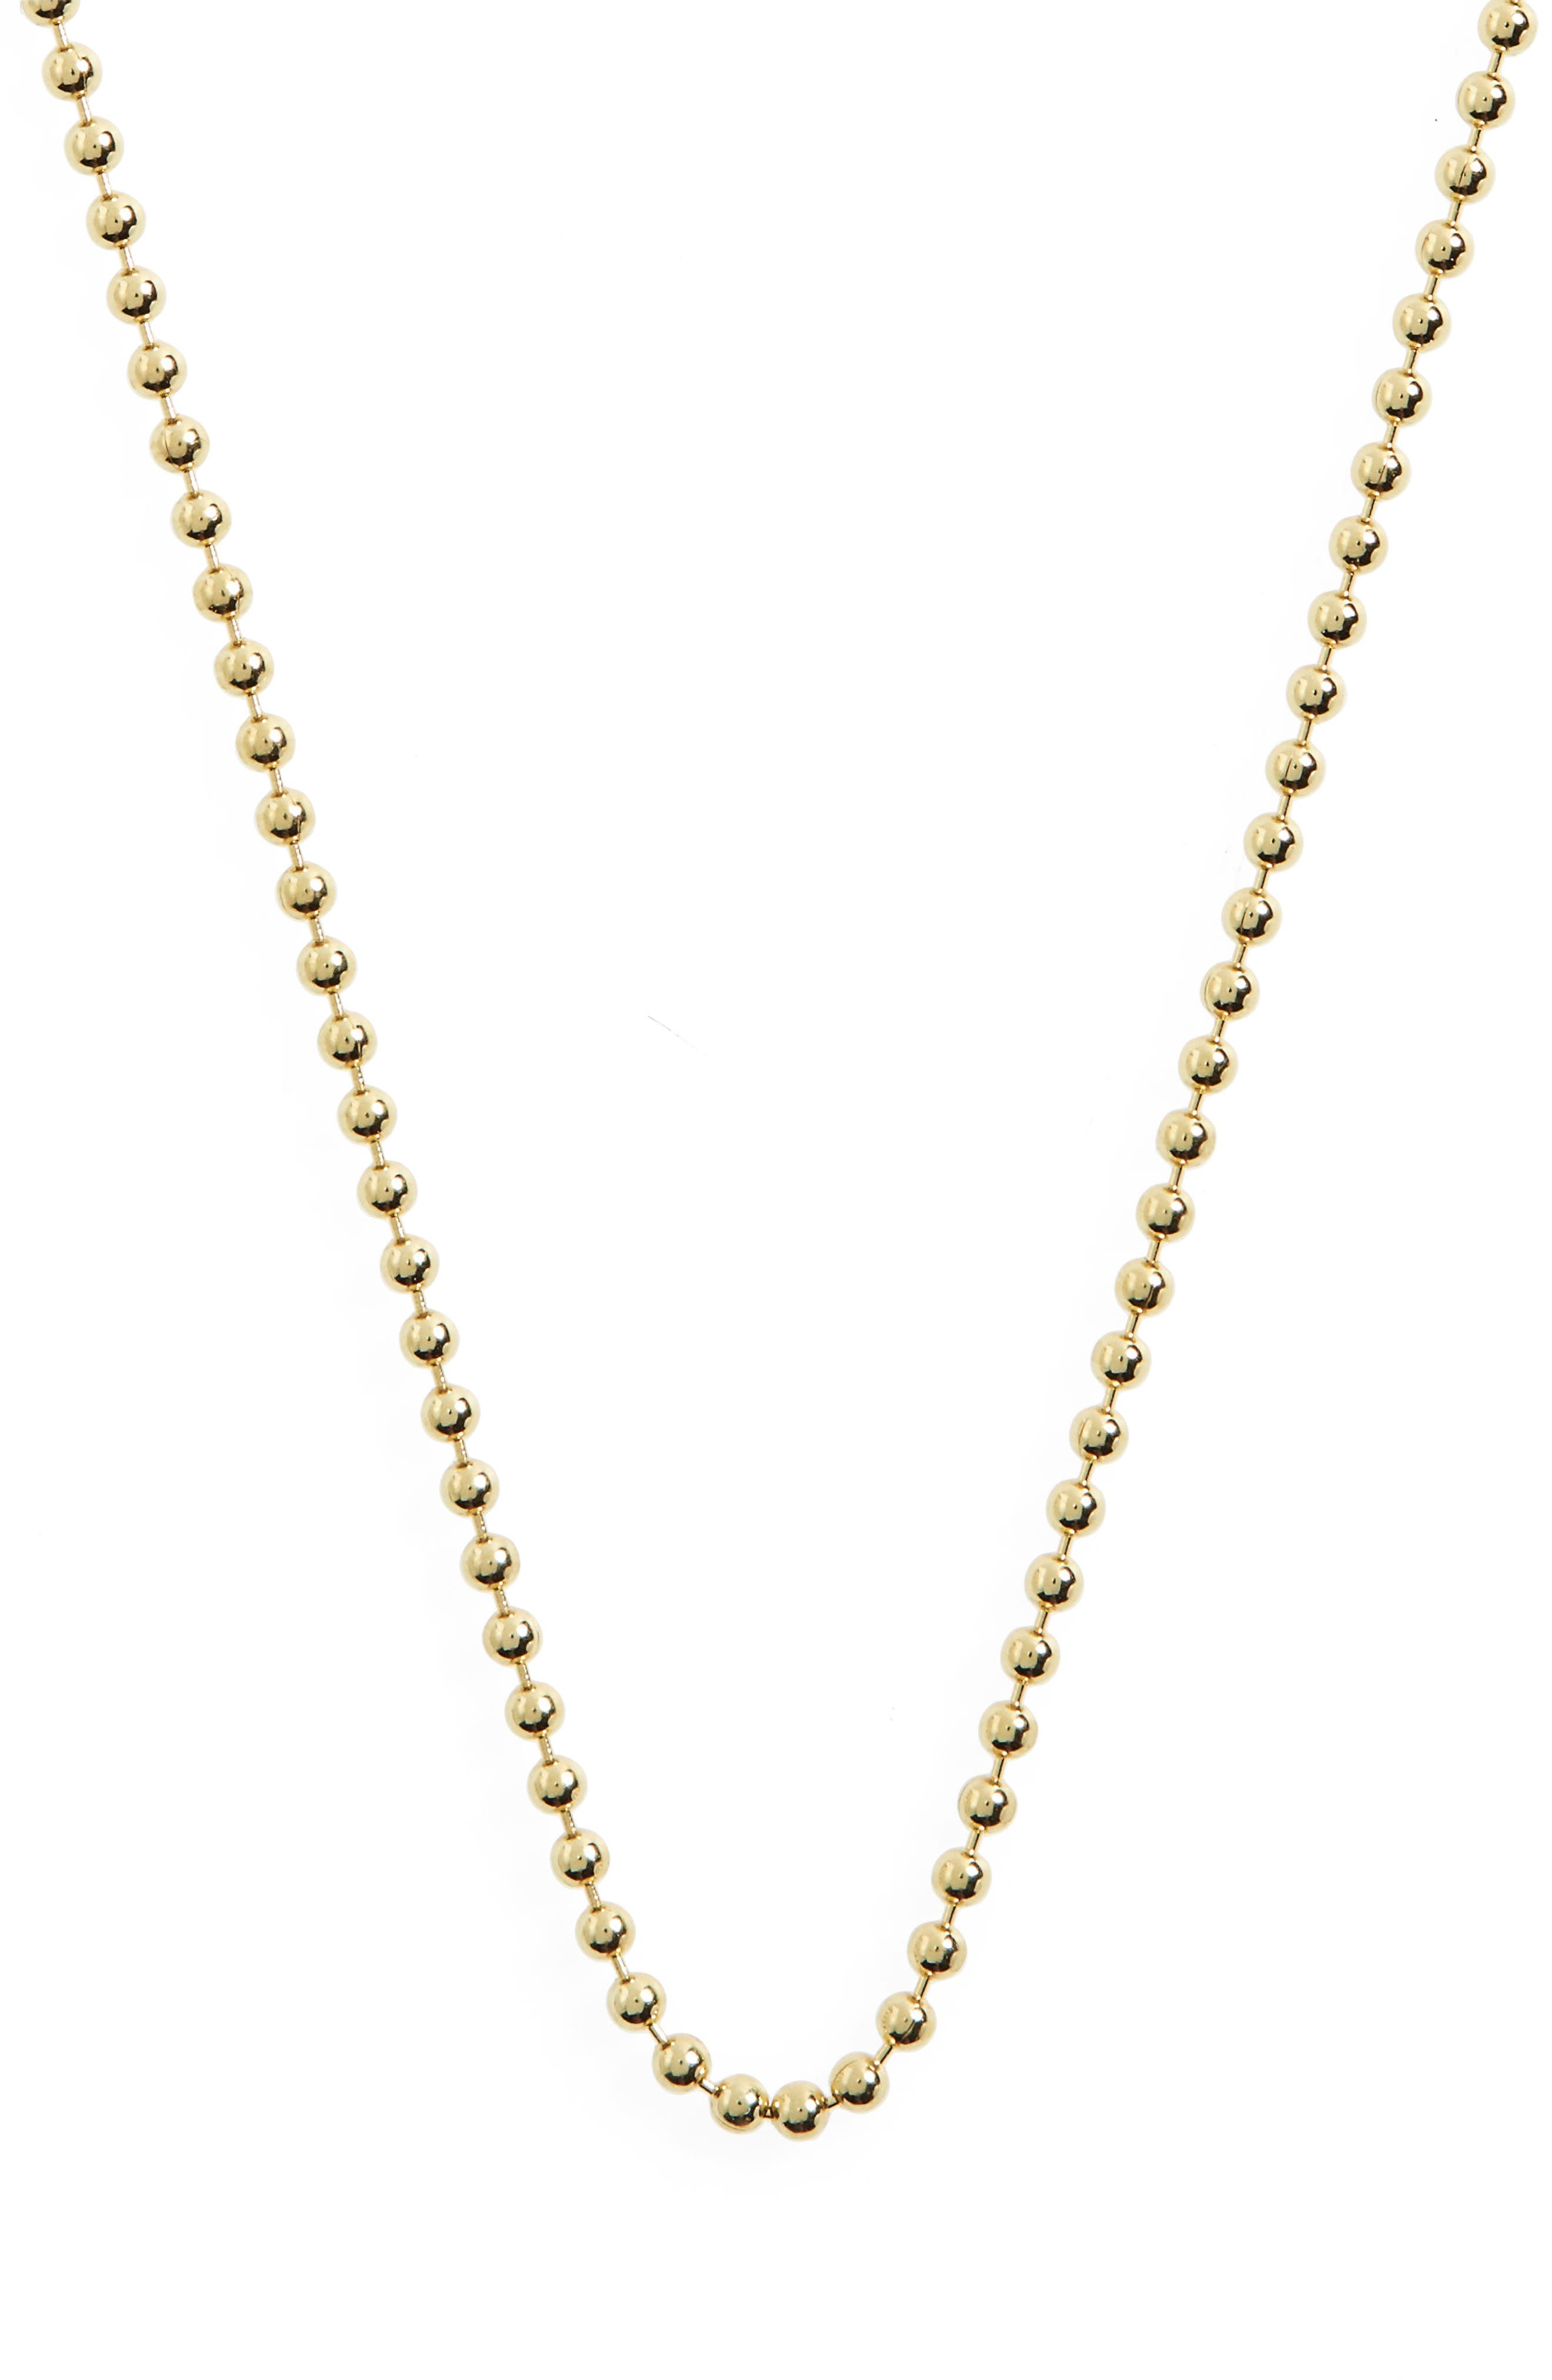 Temple St. Clair 18-Inch Ball Chain Necklace,                             Main thumbnail 1, color,                             YELLOW GOLD